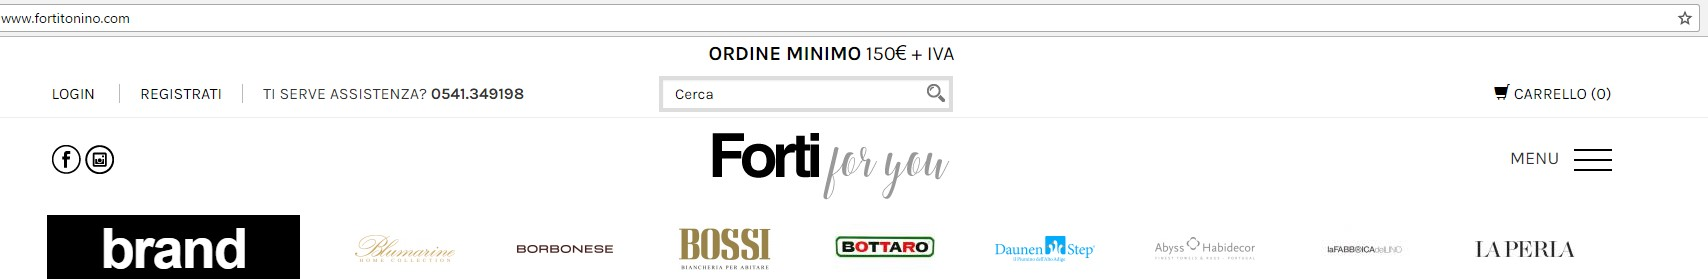 forti-for-you